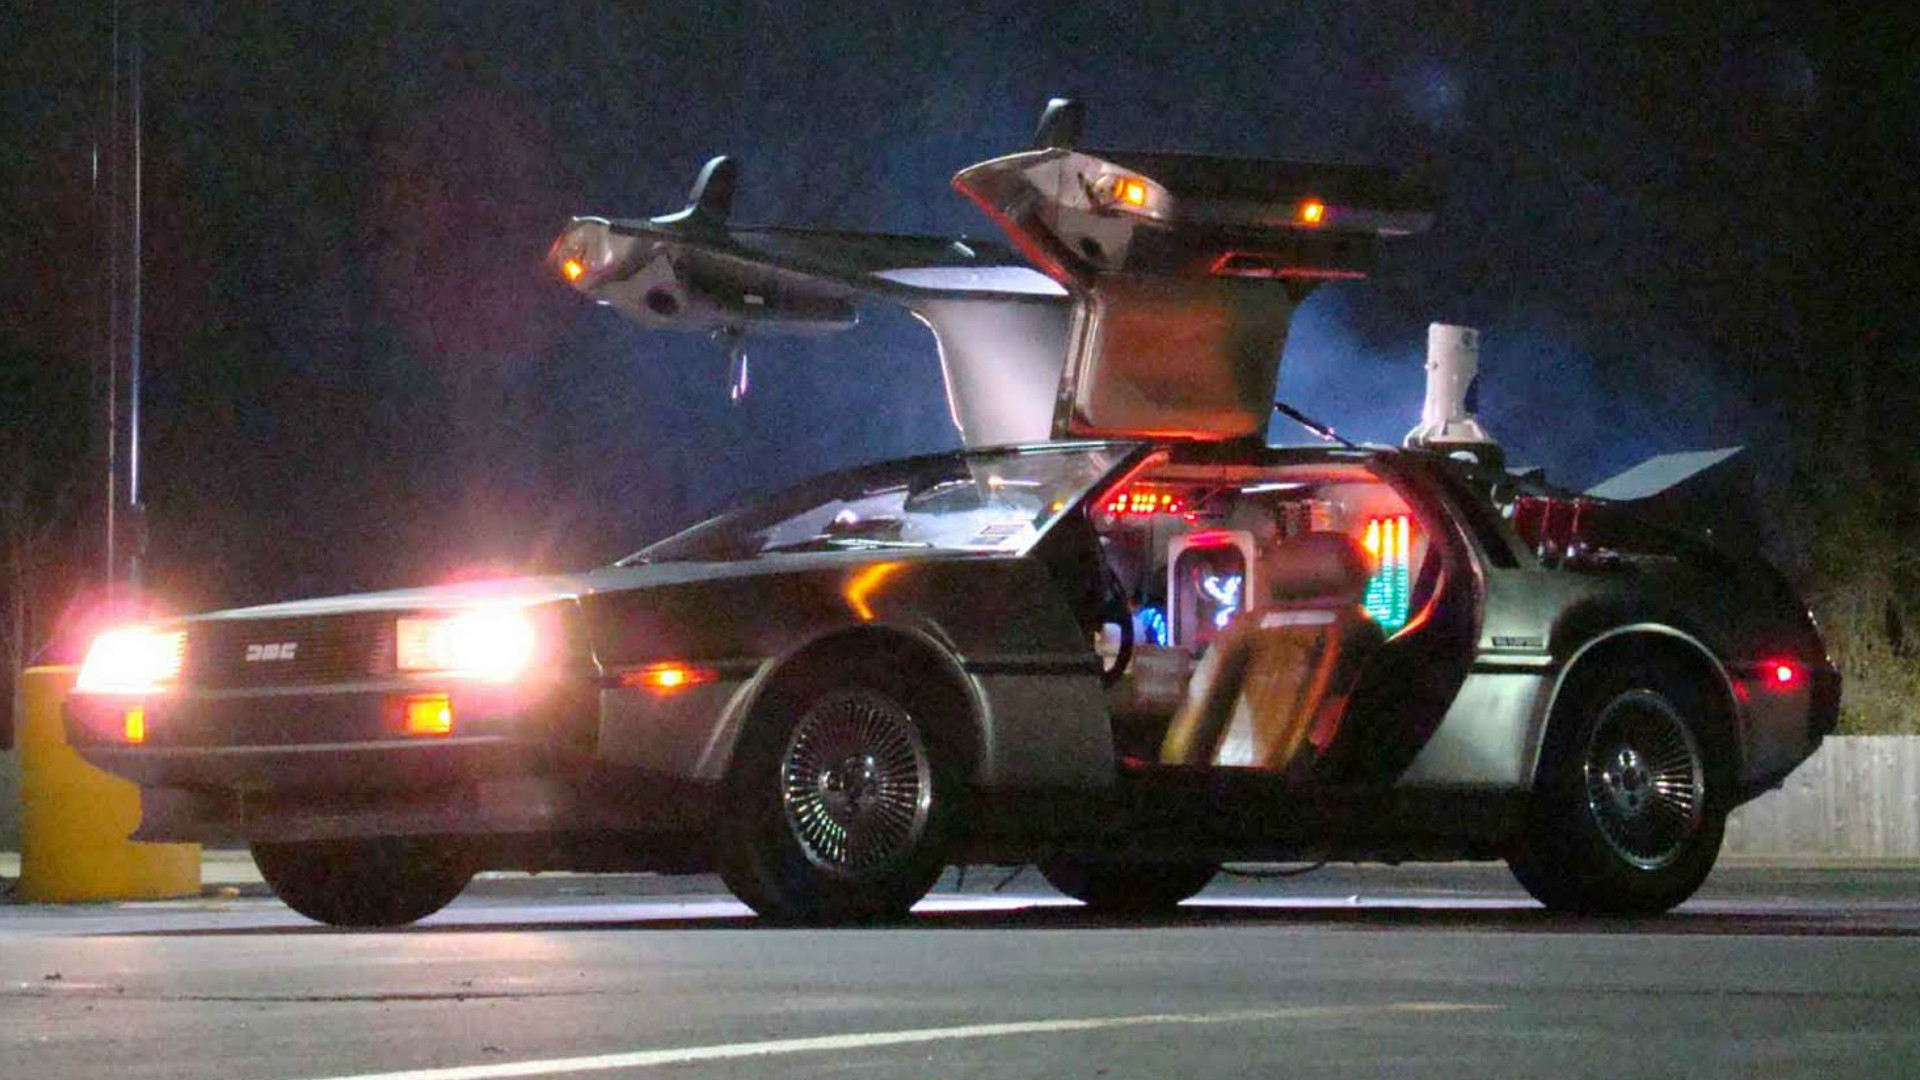 BTTF Back to the Future DeLorean